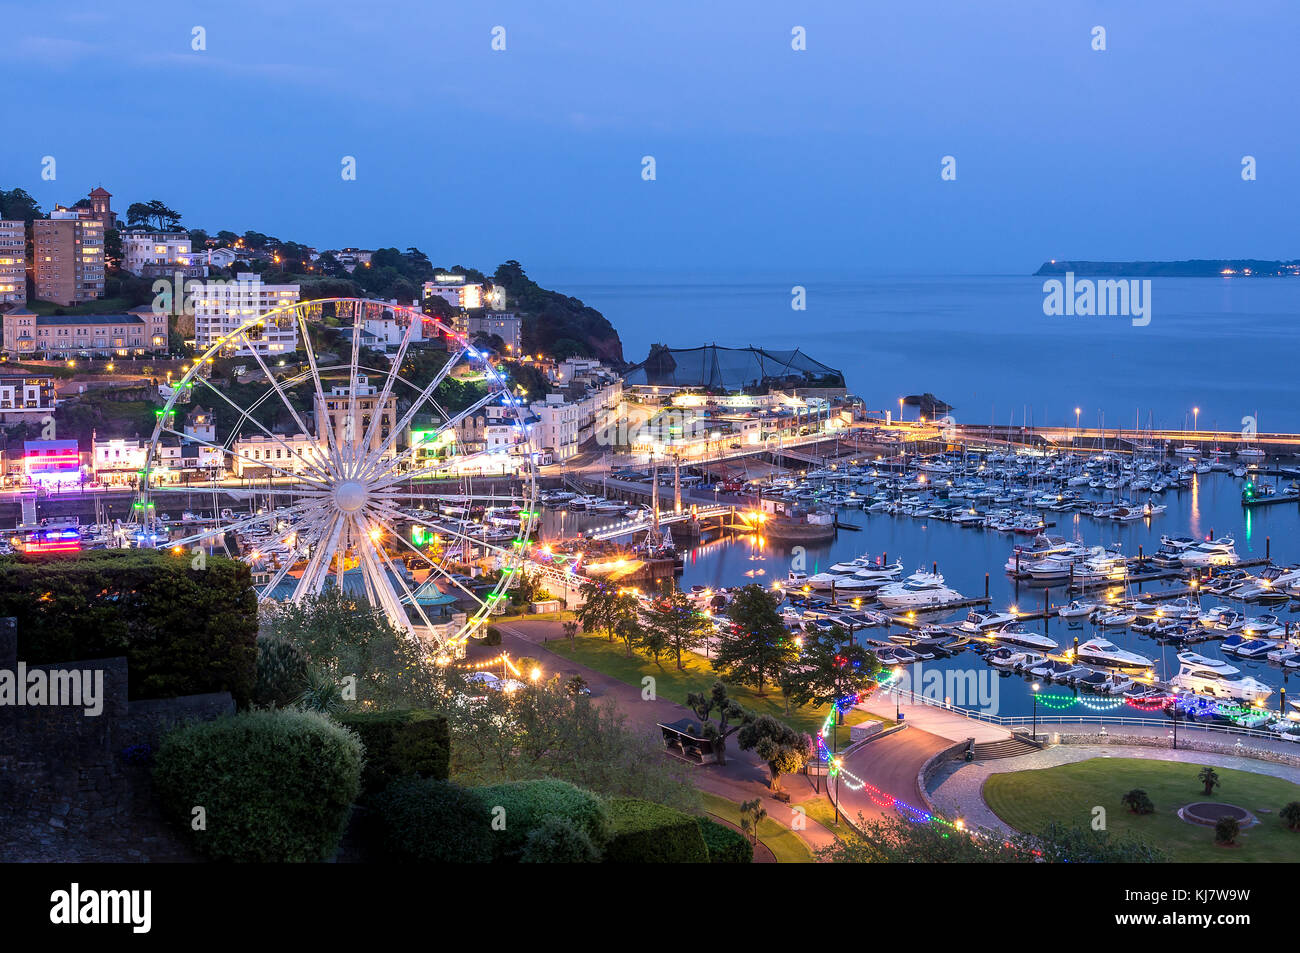 Torquay Harbour By Night - Stock Image